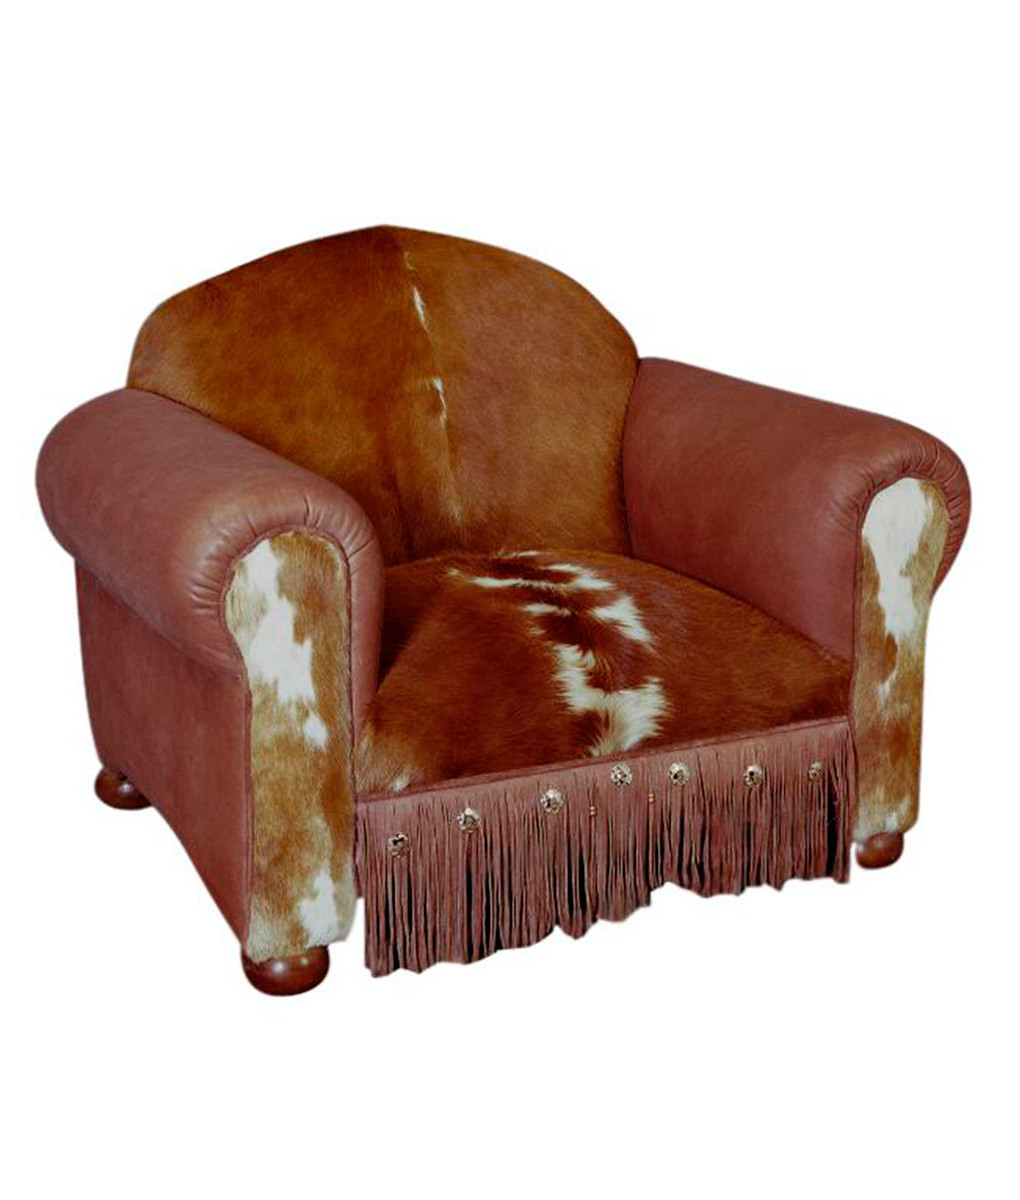 Cowhide and Leather Western Club Chair  RusticArtistrycom